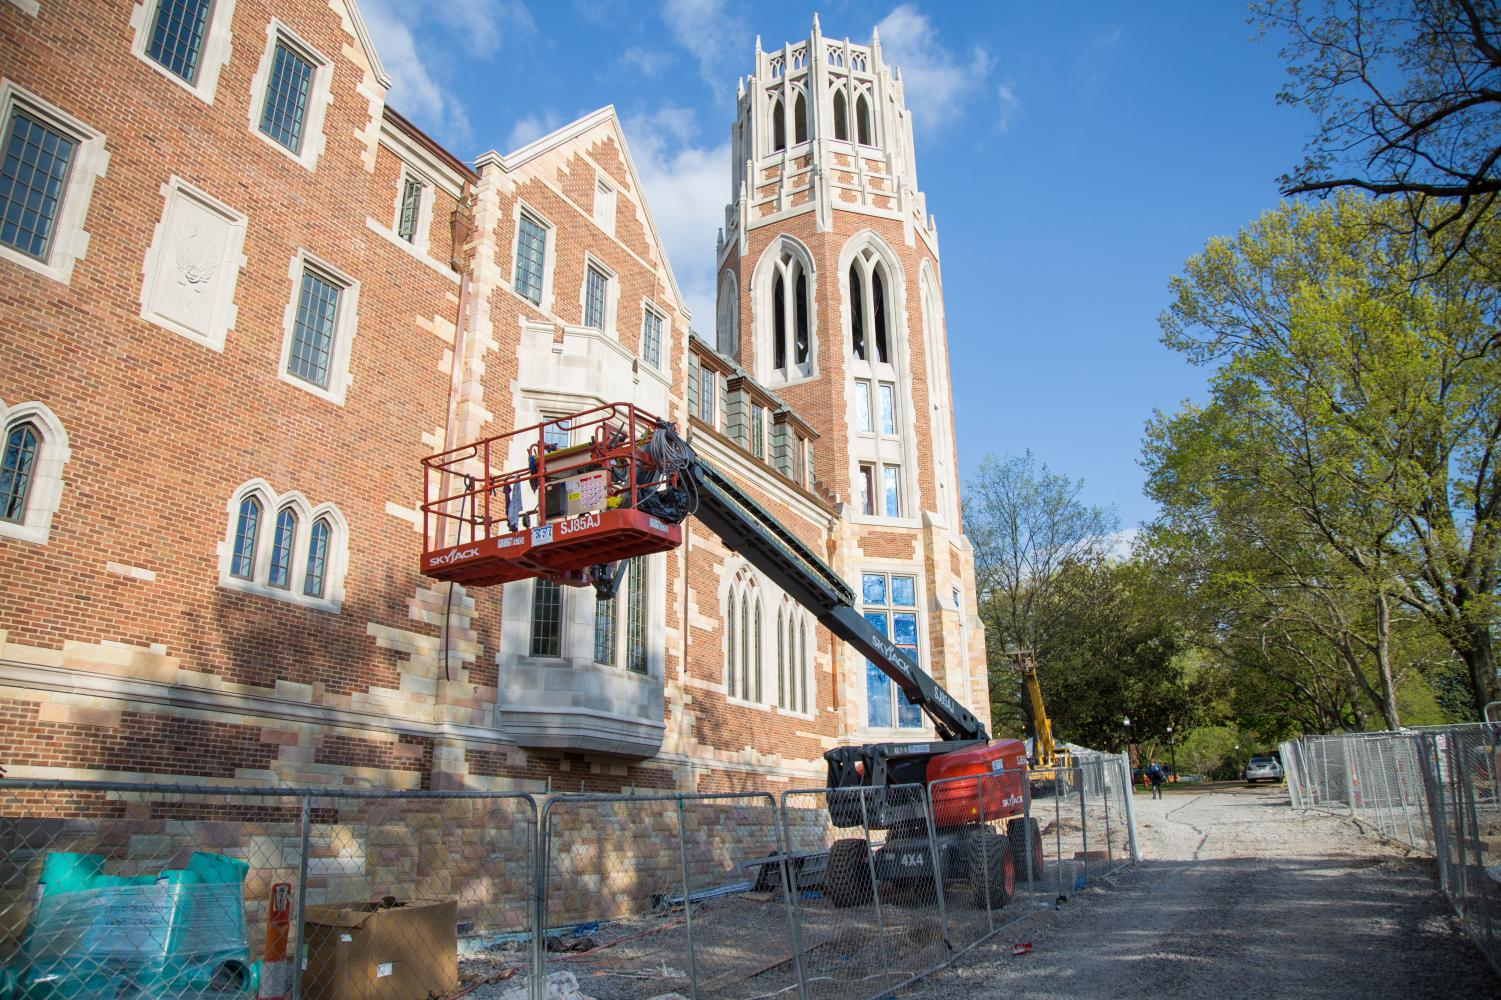 E. Bronson Ingram, Vanderbilt's most recently completed residential college, which opened its doors to students in Fall 2018. Nicholas S. Zeppos College, set to open in Fall 2020, will feature a design similar to E. Bronson Ingram College. (Photo courtesy Claire Barnett)